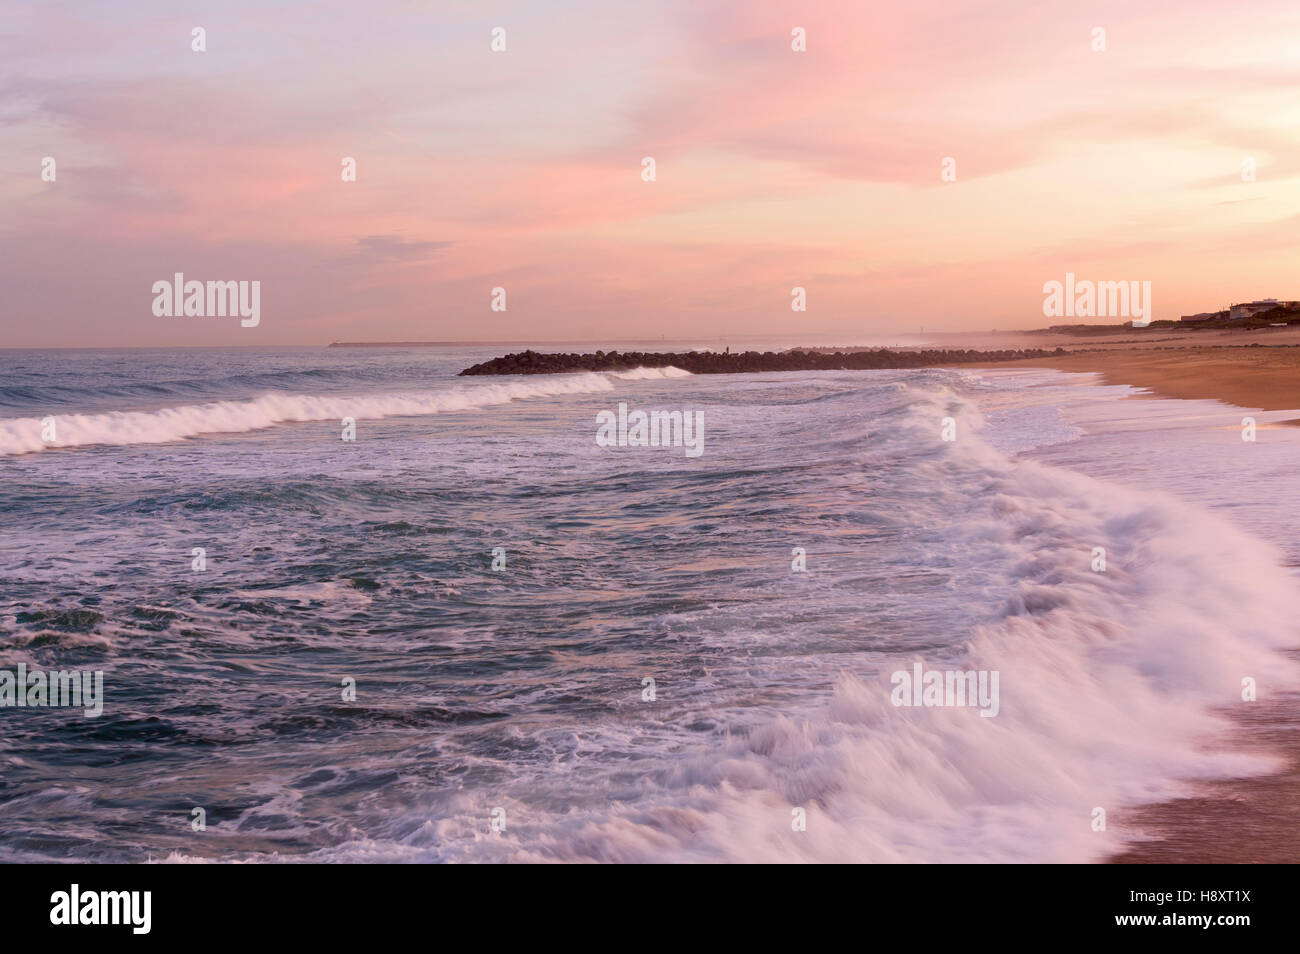 Chambre D Amour Dawn On The Chambre D Amour Beach In Anglet France Europe Stock